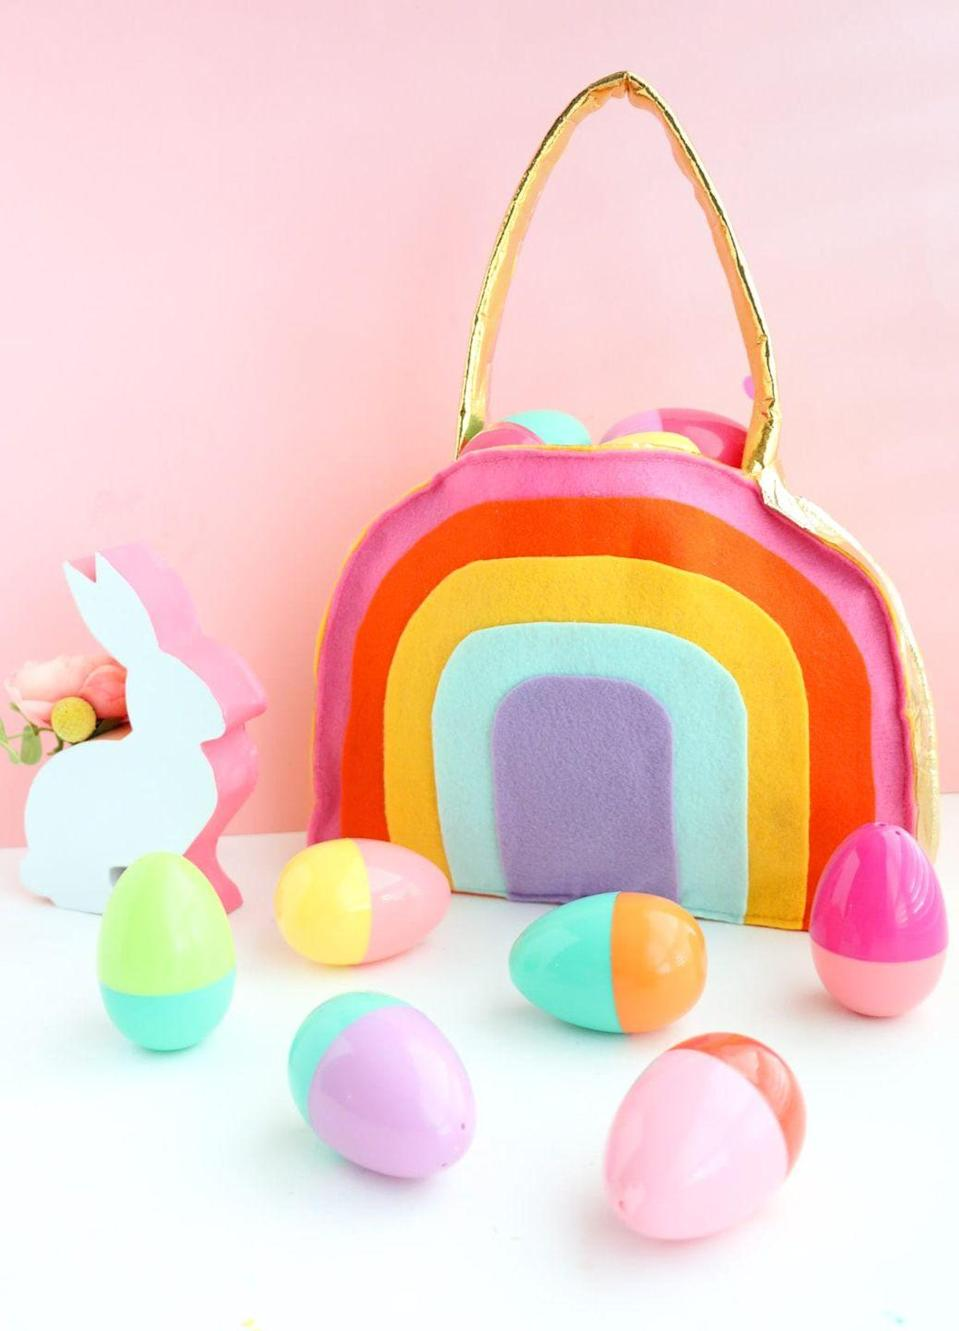 "<p>Use multicolored felt to create a purse/Easter basket combo your tween will adore.</p><p>Get the tutorial at <a href=""https://lovelyindeed.com/make-rainbow-easter-basket/"" rel=""nofollow noopener"" target=""_blank"" data-ylk=""slk:Lovely Indeed."" class=""link rapid-noclick-resp"">Lovely Indeed.</a></p><p><a class=""link rapid-noclick-resp"" href=""https://www.amazon.com/dp/B01MSRL8XN/ref=twister_B01MD0X83J?_encoding=UTF8&psc=1&tag=syn-yahoo-20&ascsubtag=%5Bartid%7C10072.g.30506642%5Bsrc%7Cyahoo-us"" rel=""nofollow noopener"" target=""_blank"" data-ylk=""slk:SHOP FELT"">SHOP FELT</a></p>"